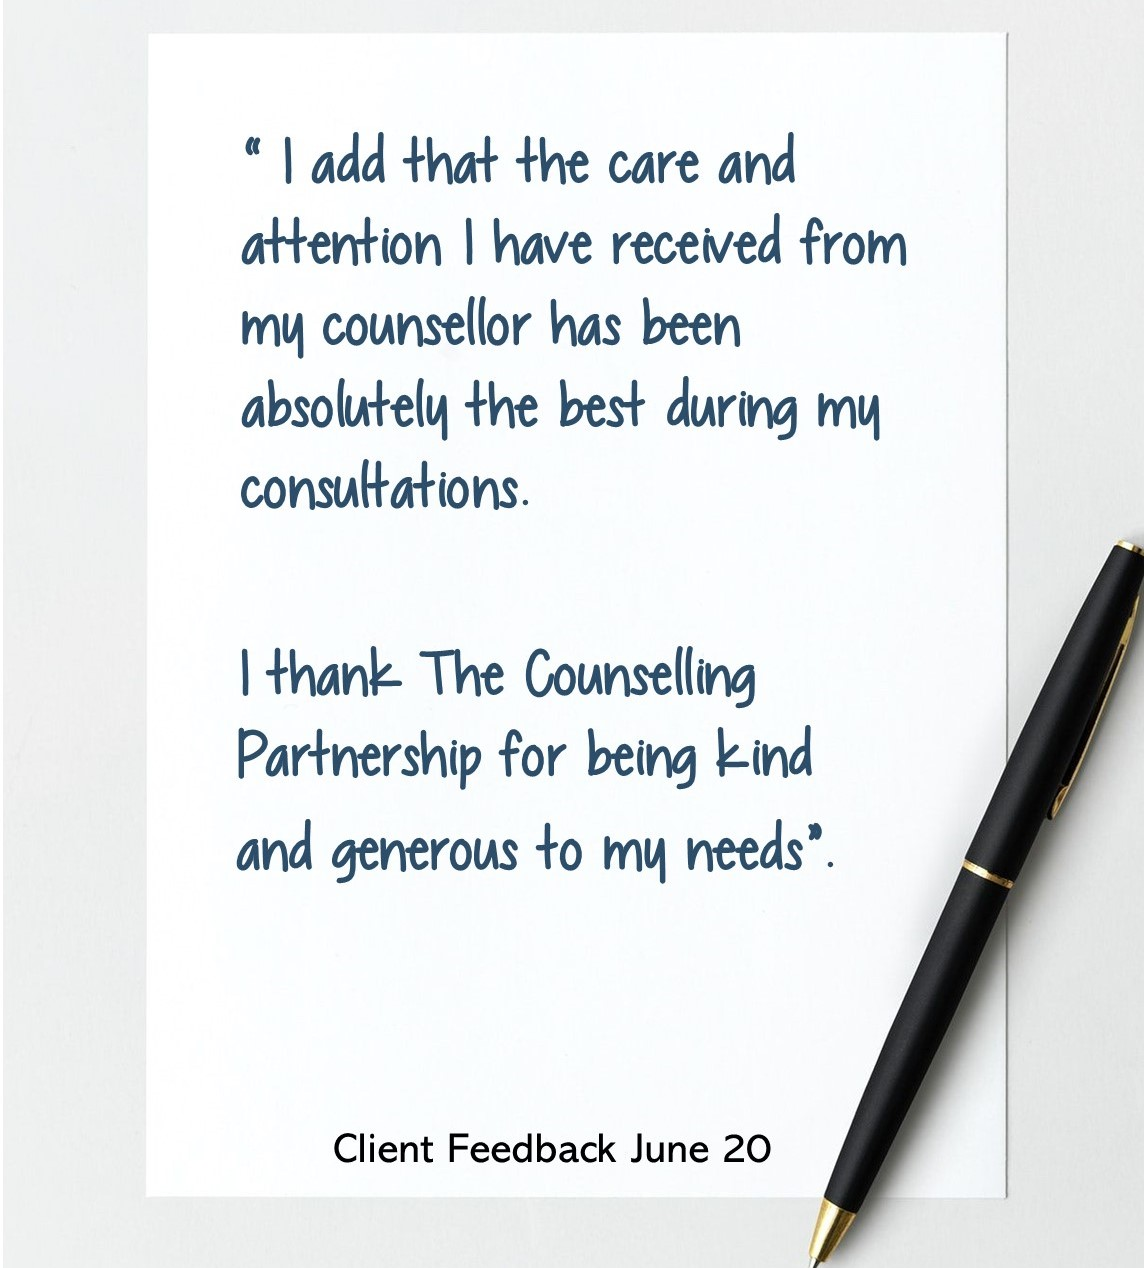 The Counselling Partnership